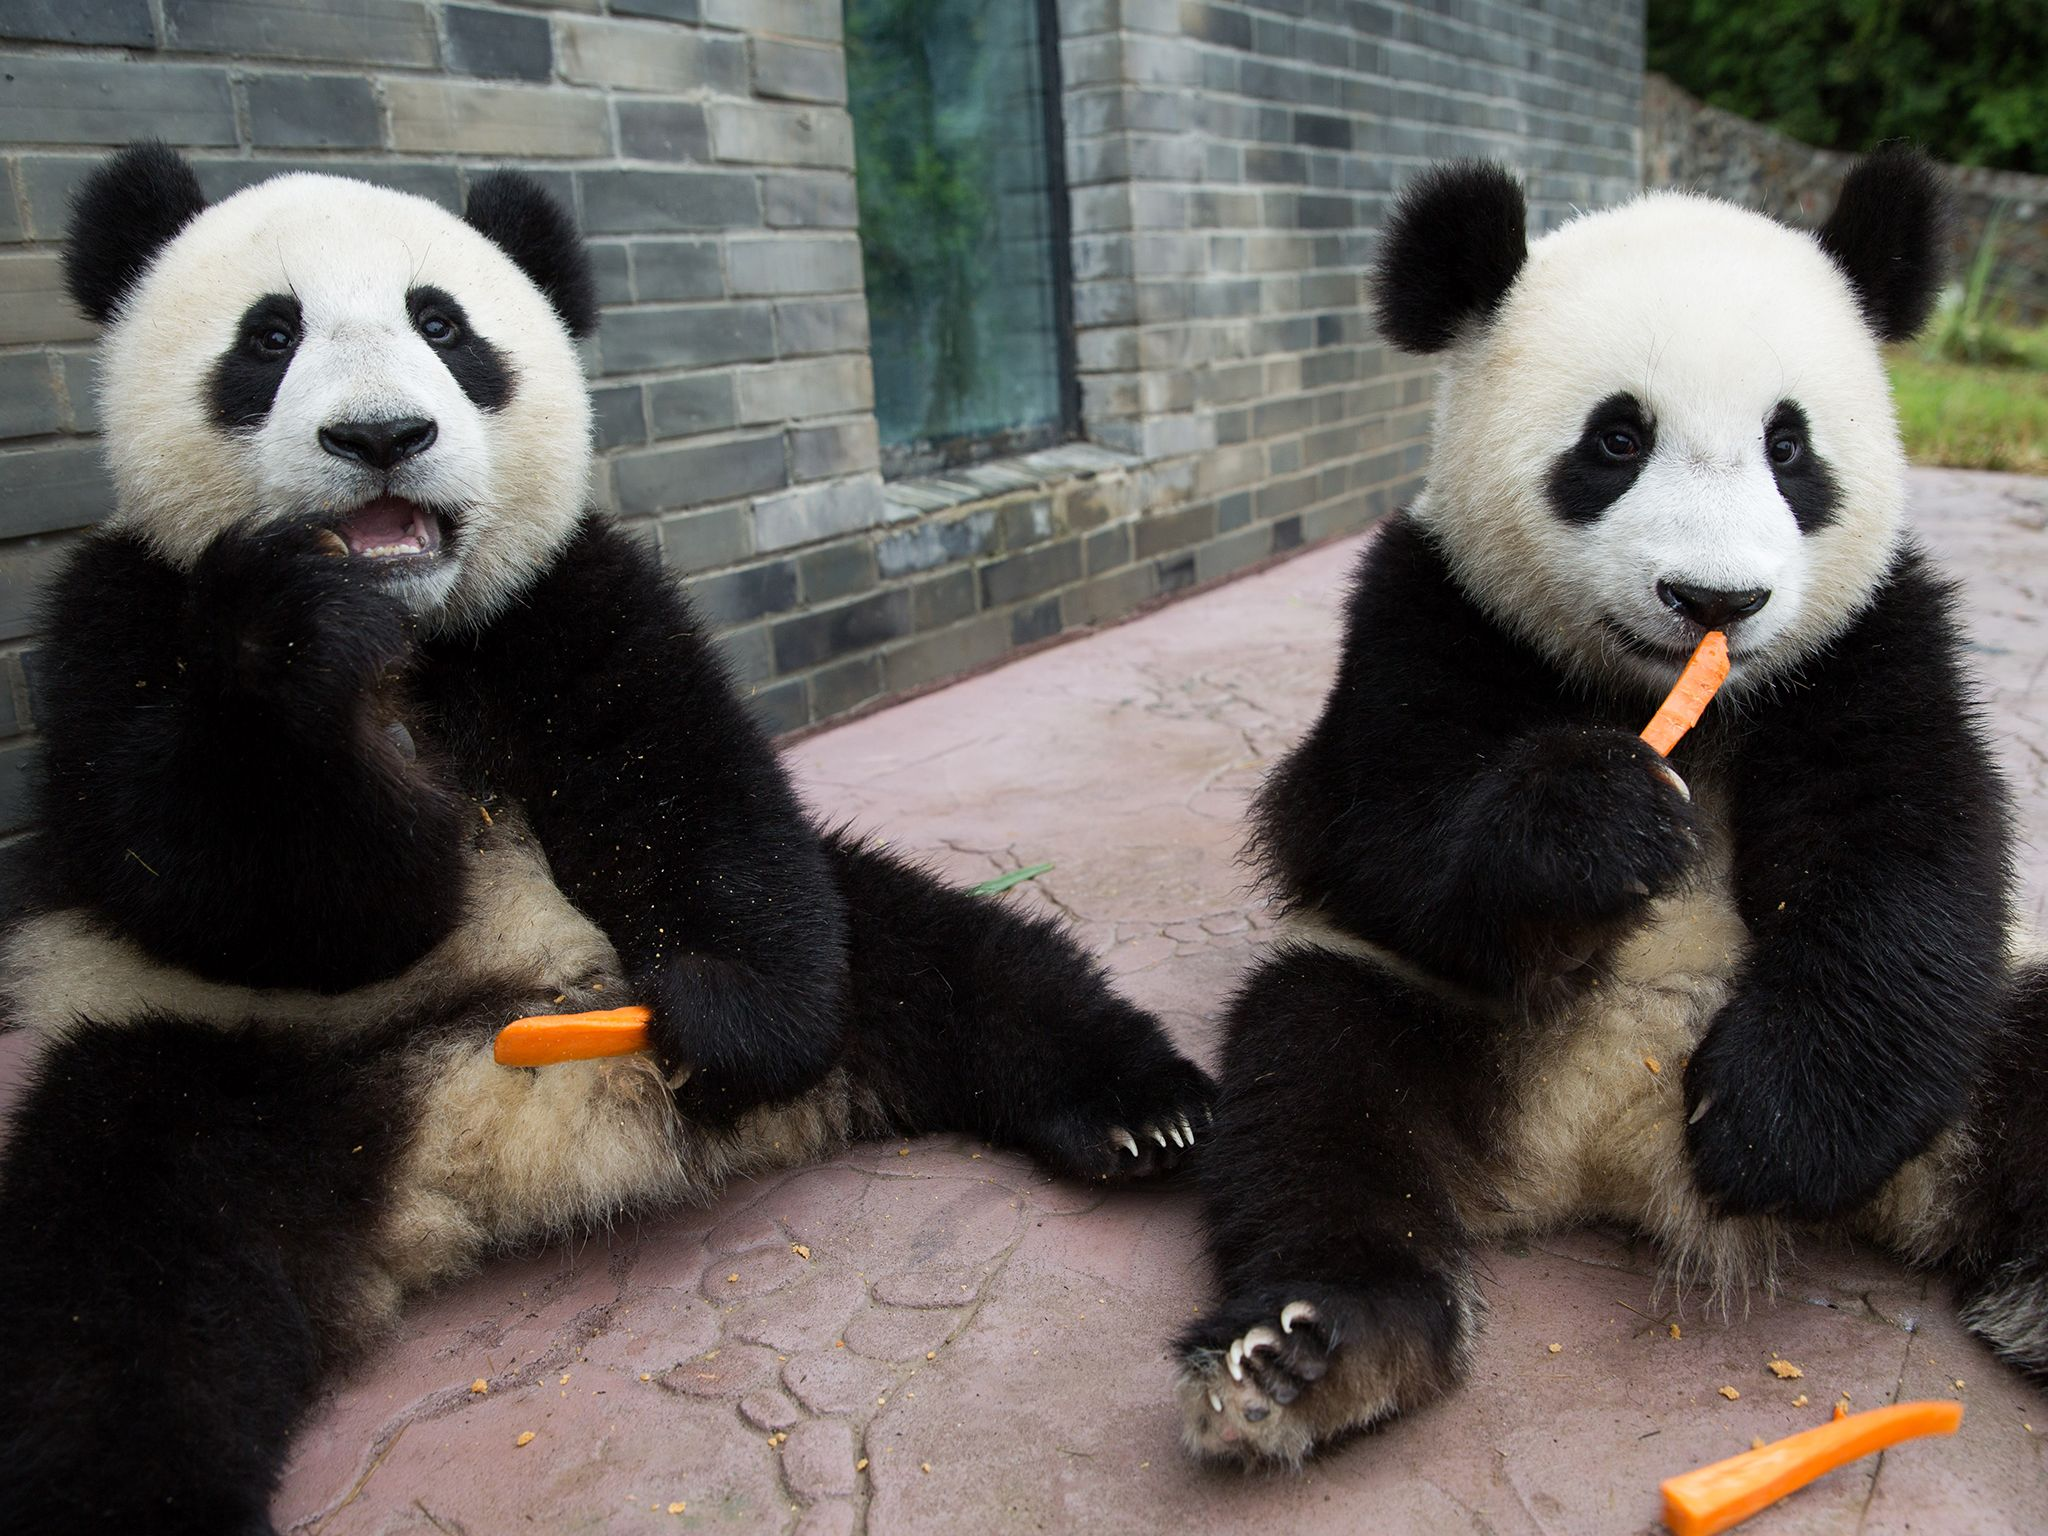 Young Pandas eating carrots. This image is from Panda Babies. [Photo of the day - July 2016]